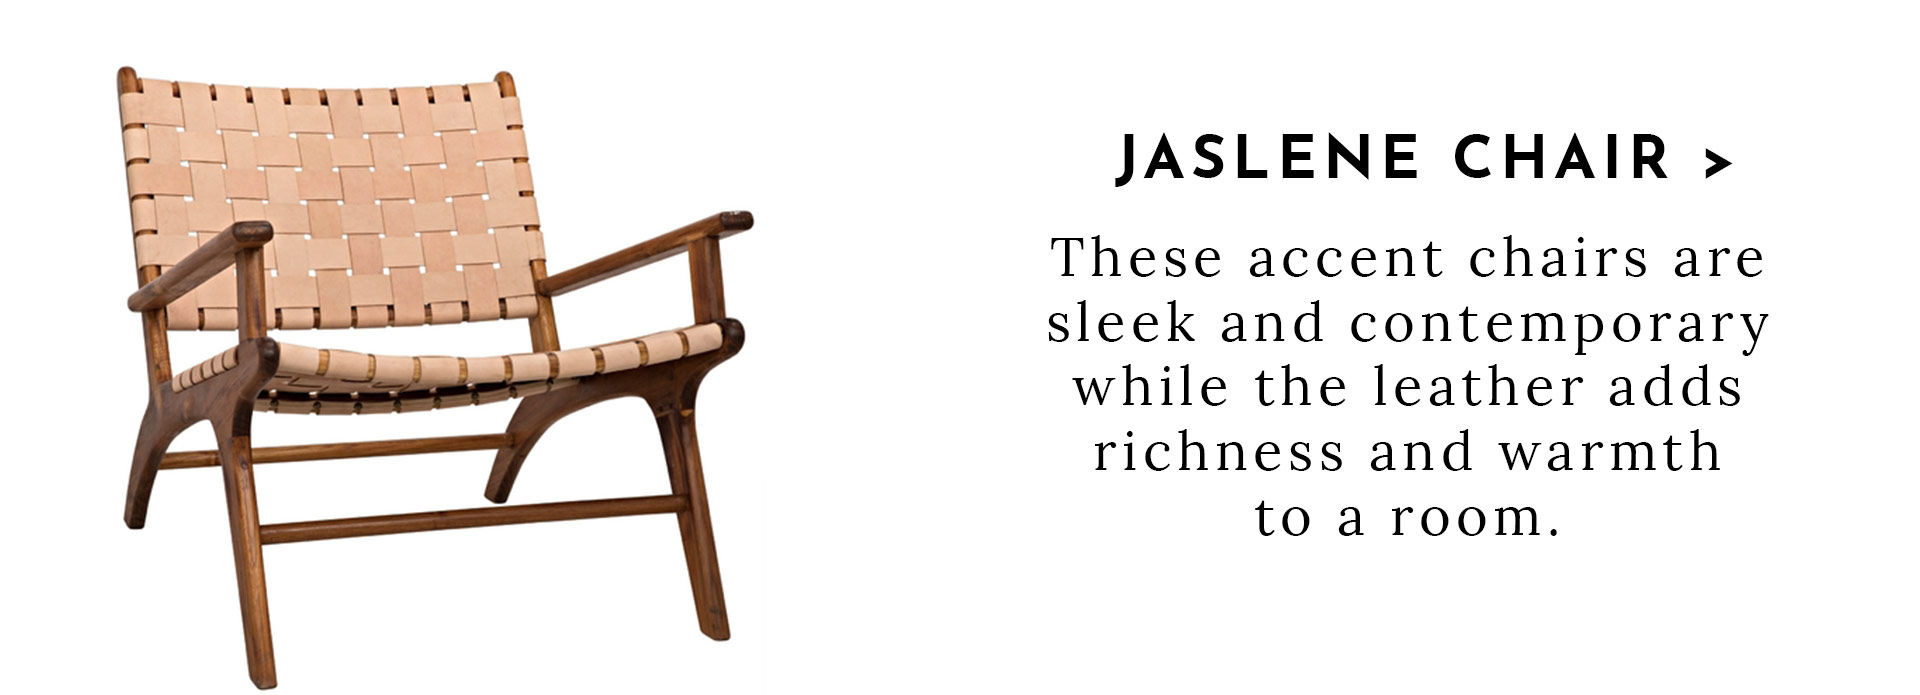 Jaslene Chair